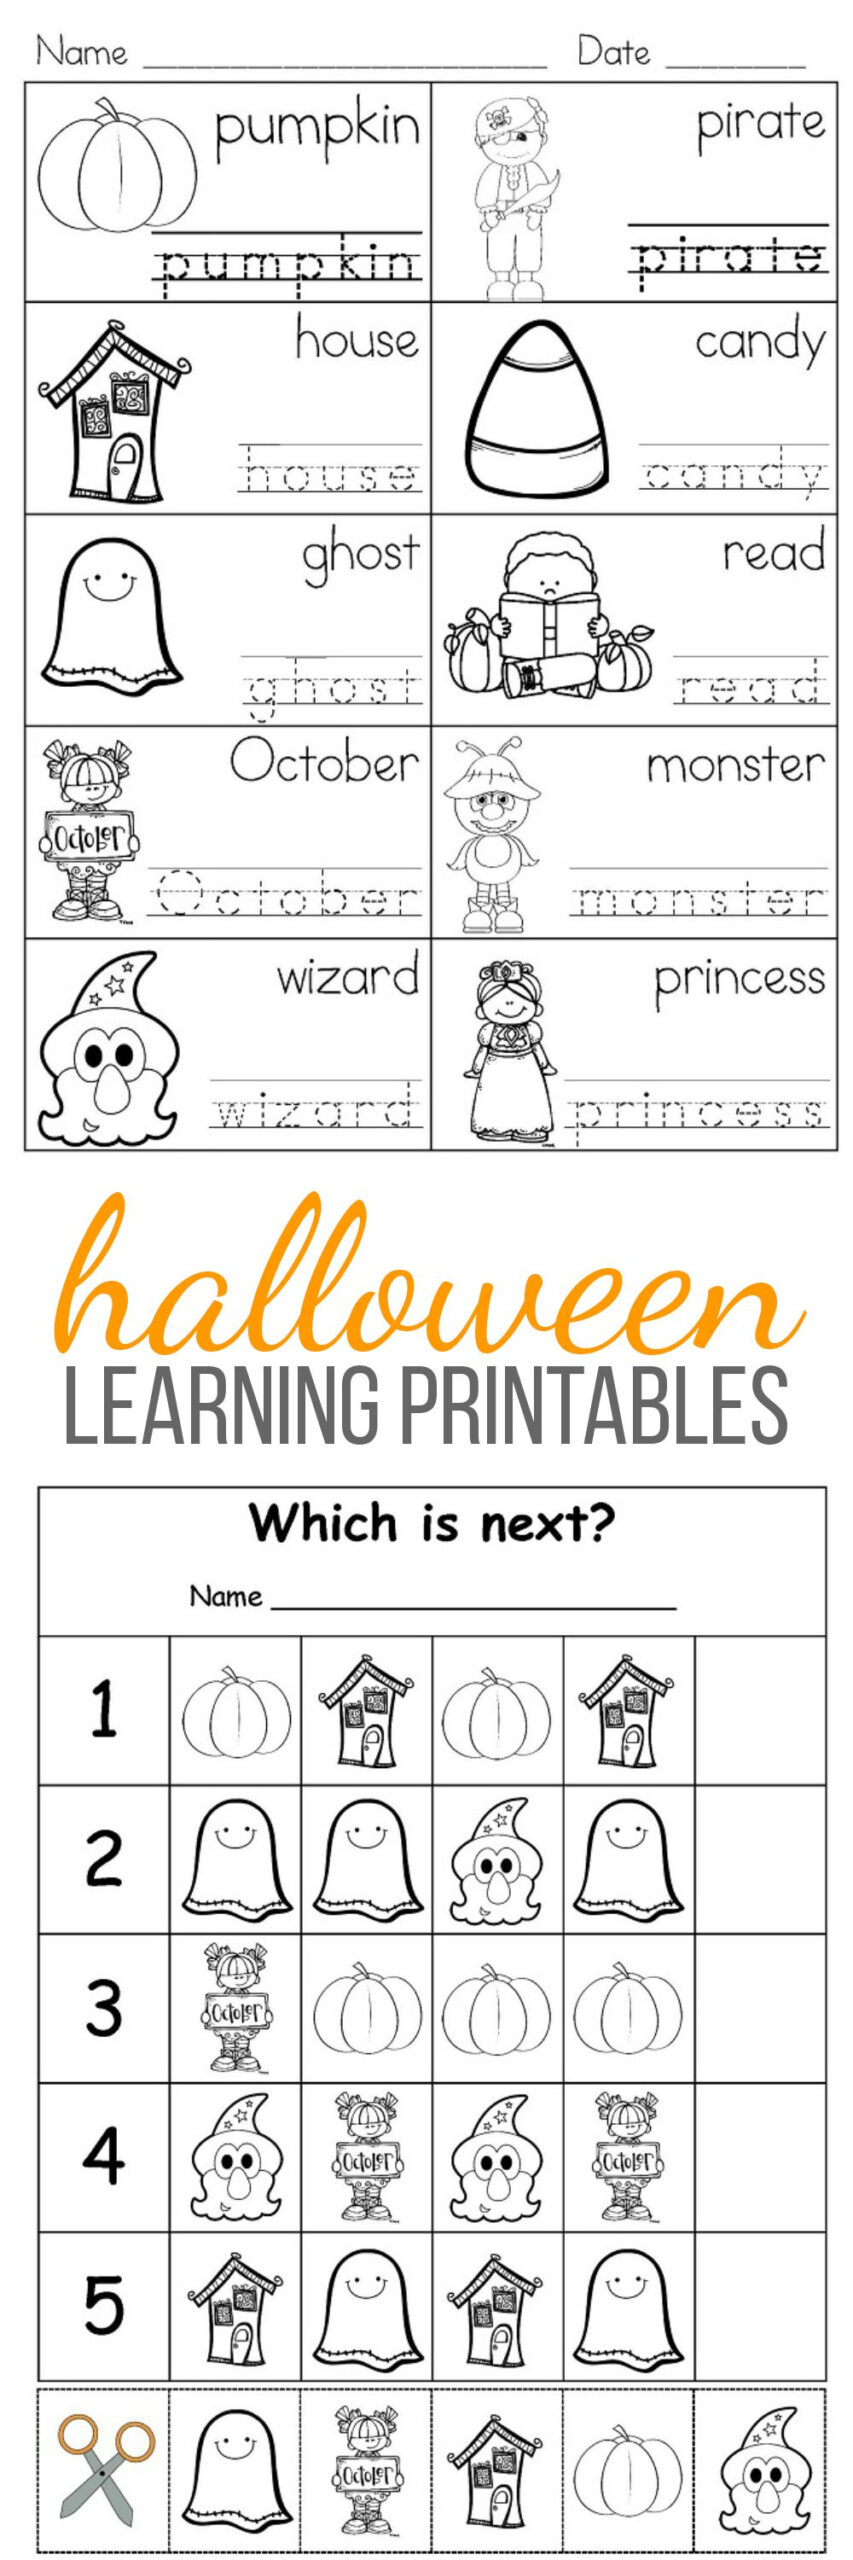 Halloween: Fun Learning Printables For Kids - See Vanessa